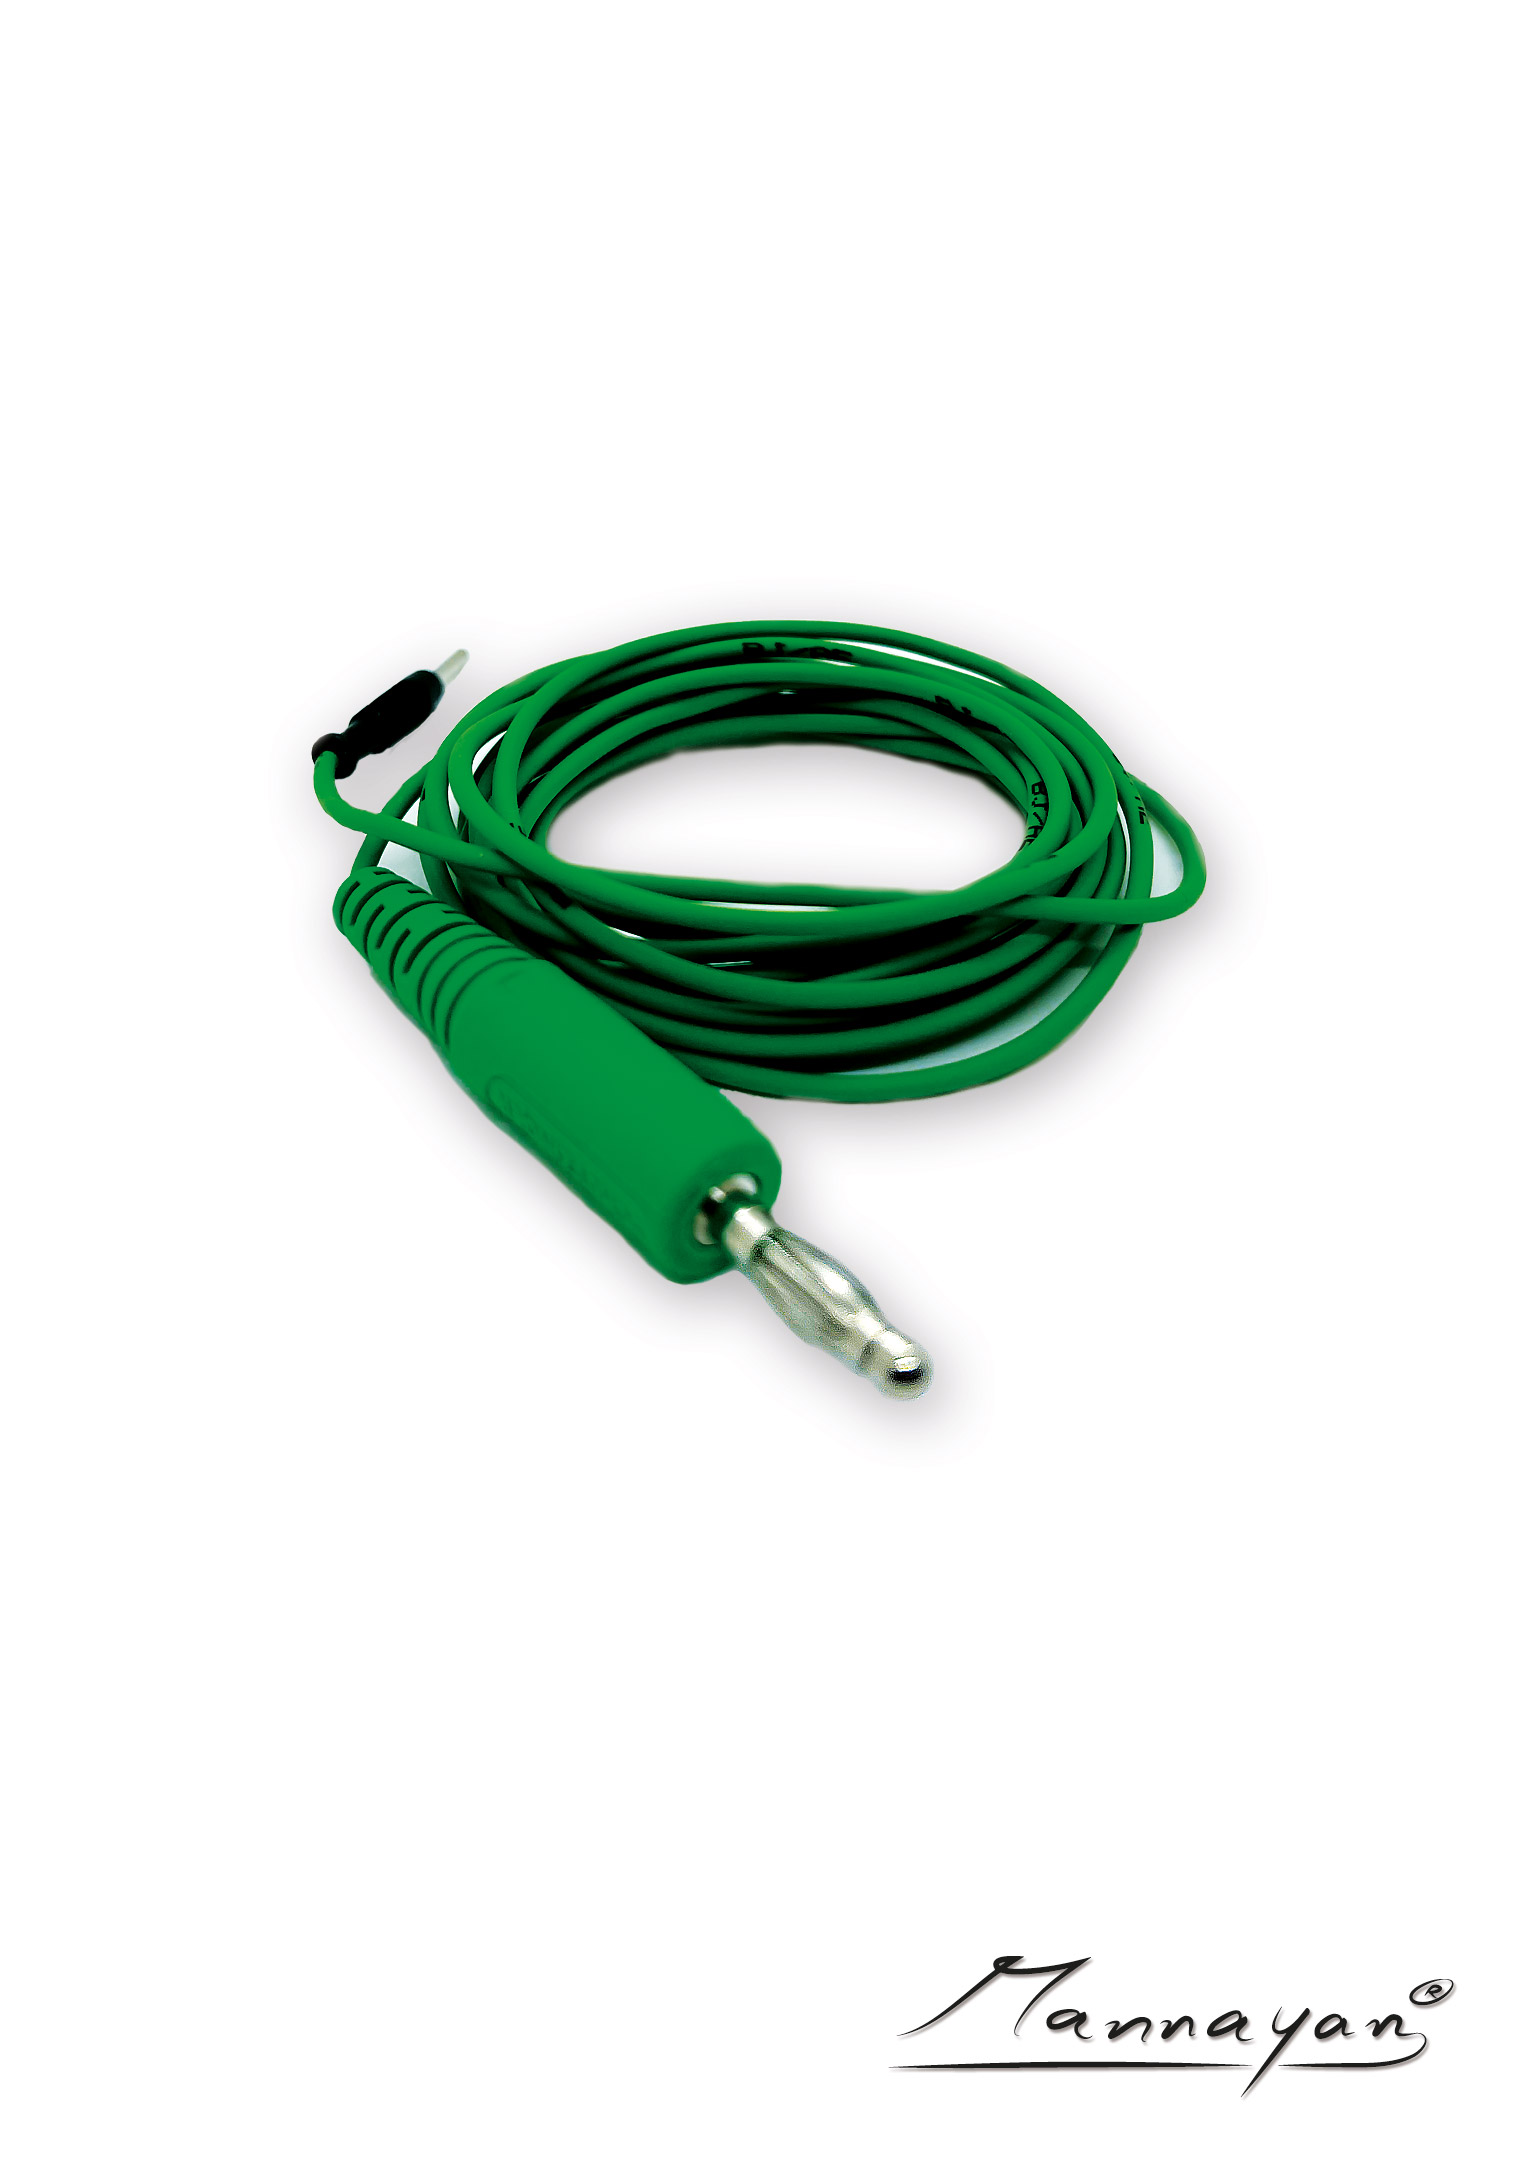 Cable (2,5 m) with connector adapter for textile surface electrodes (green)